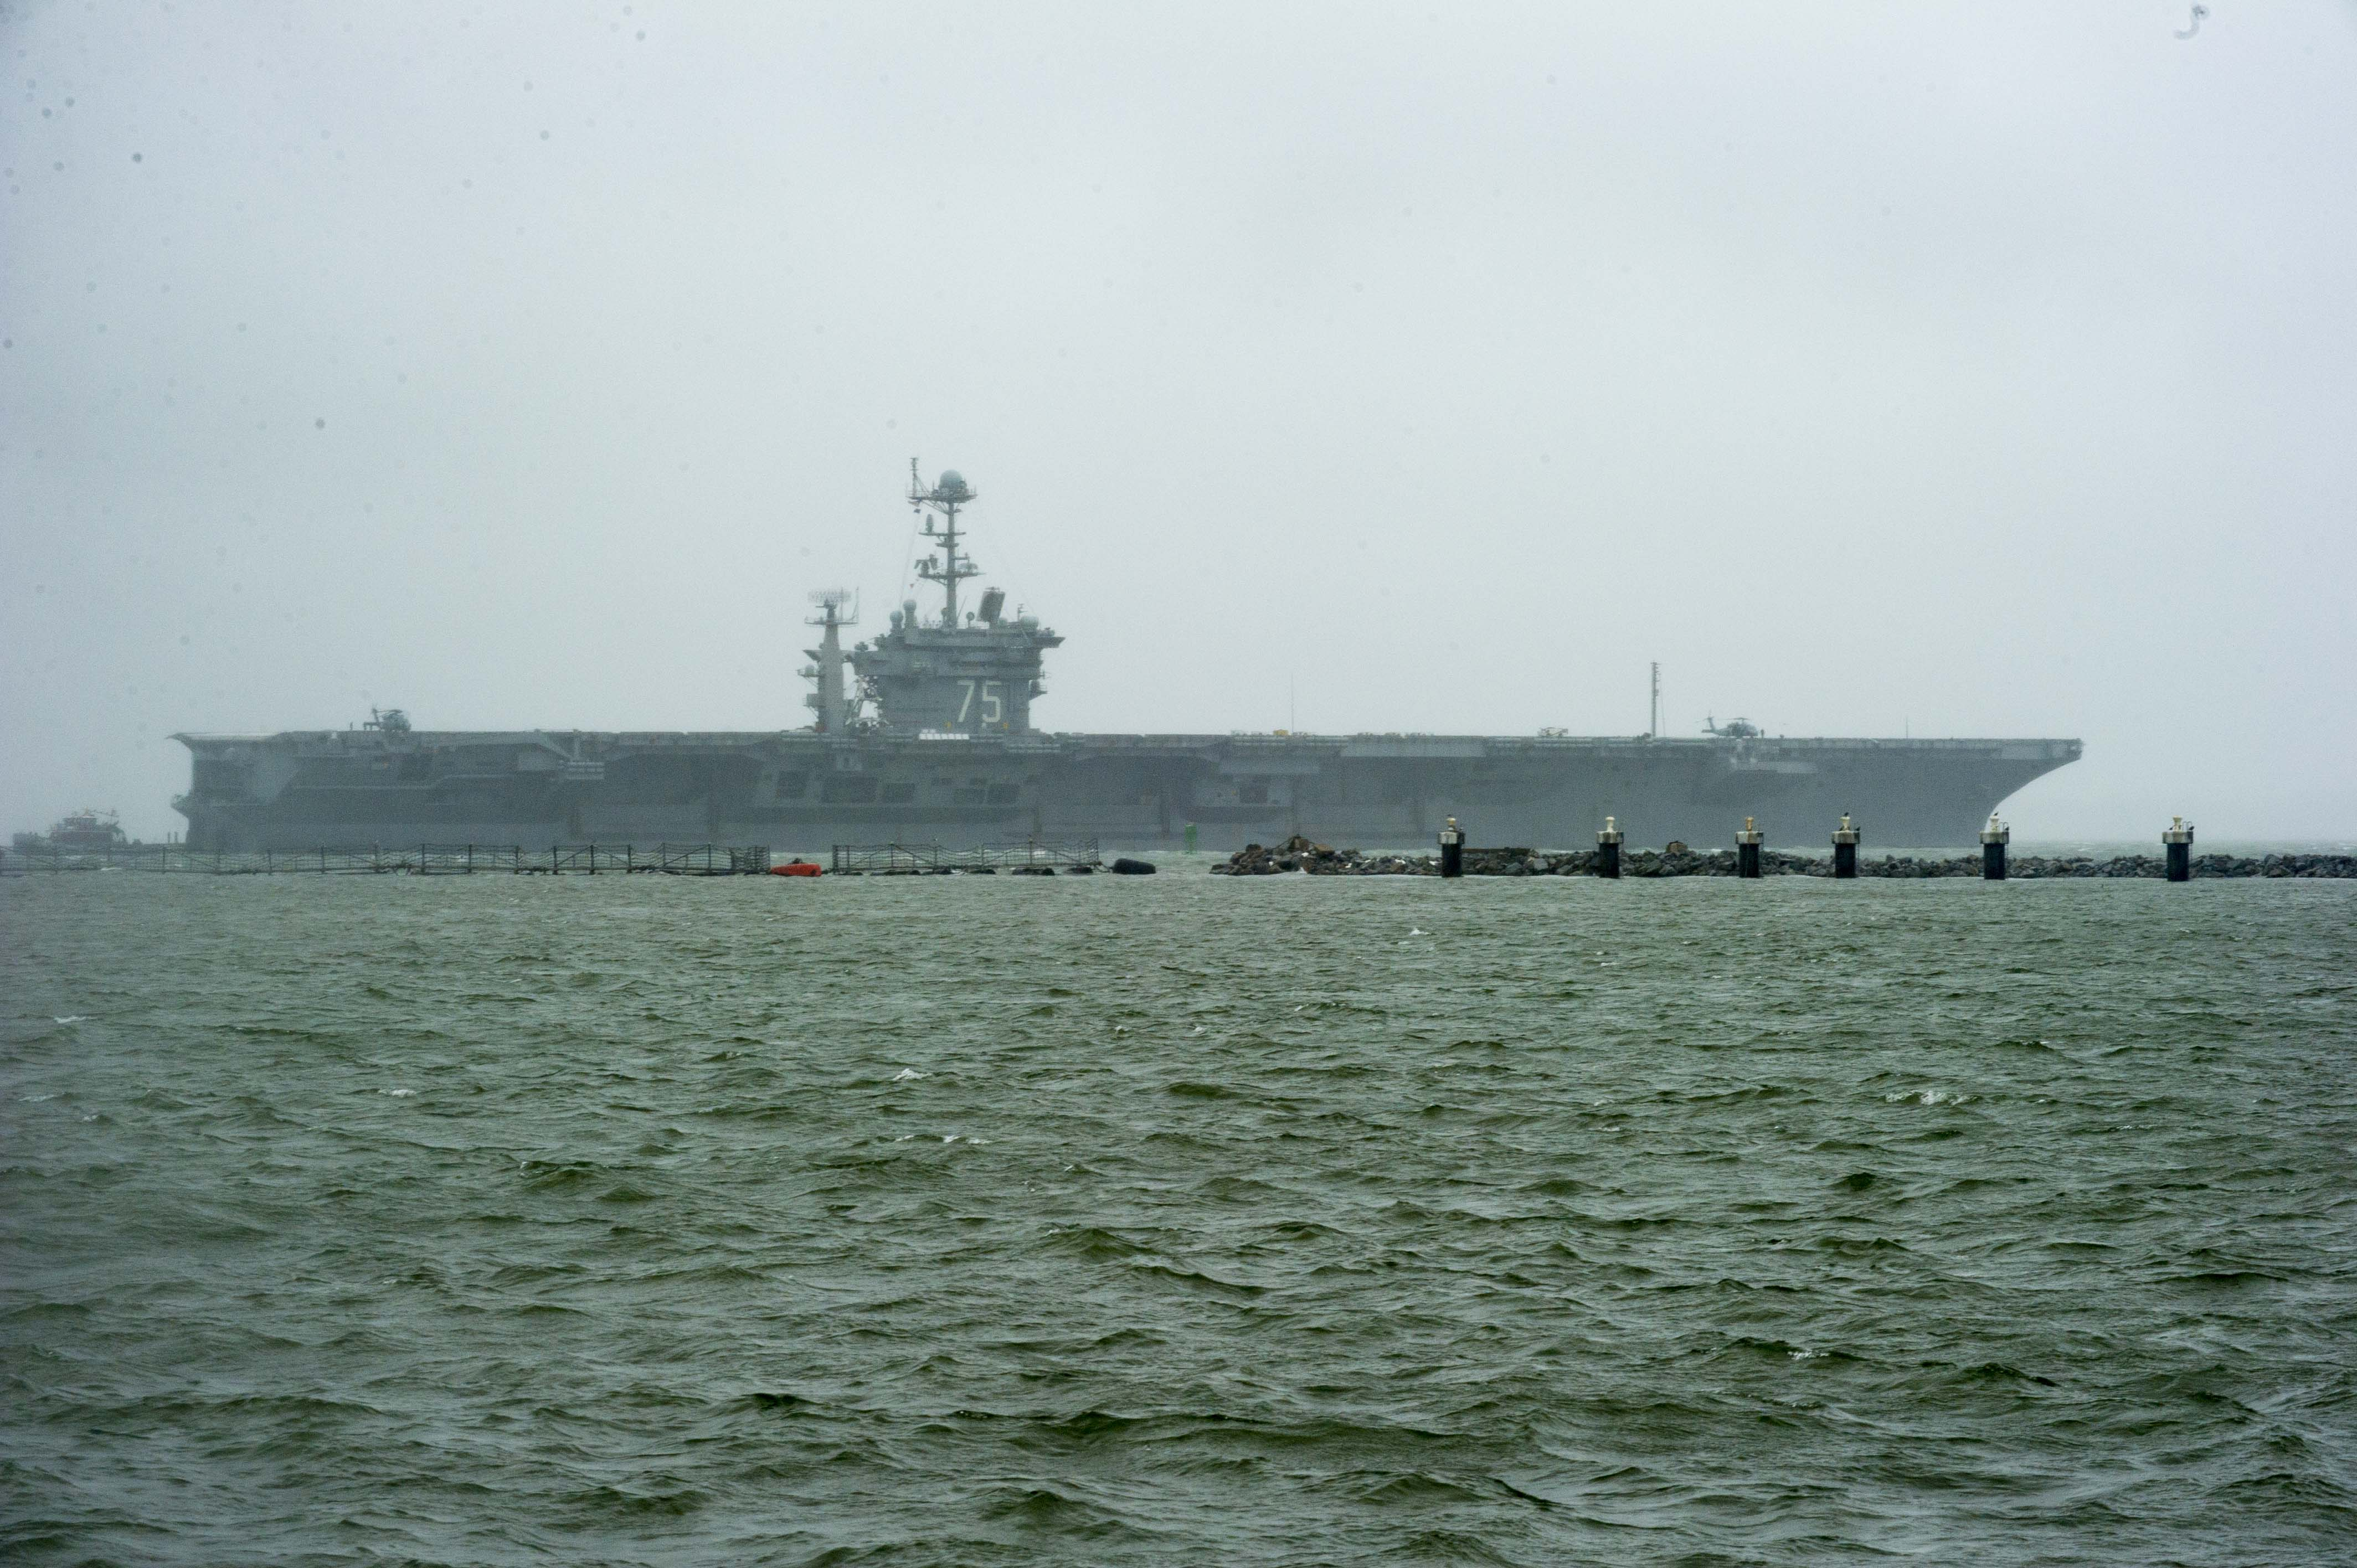 USS Harry S. Truman (CVN-75) gets underway in preparation for Hurricane Joaquin on Oct. 1, 2015. US Navy Photo